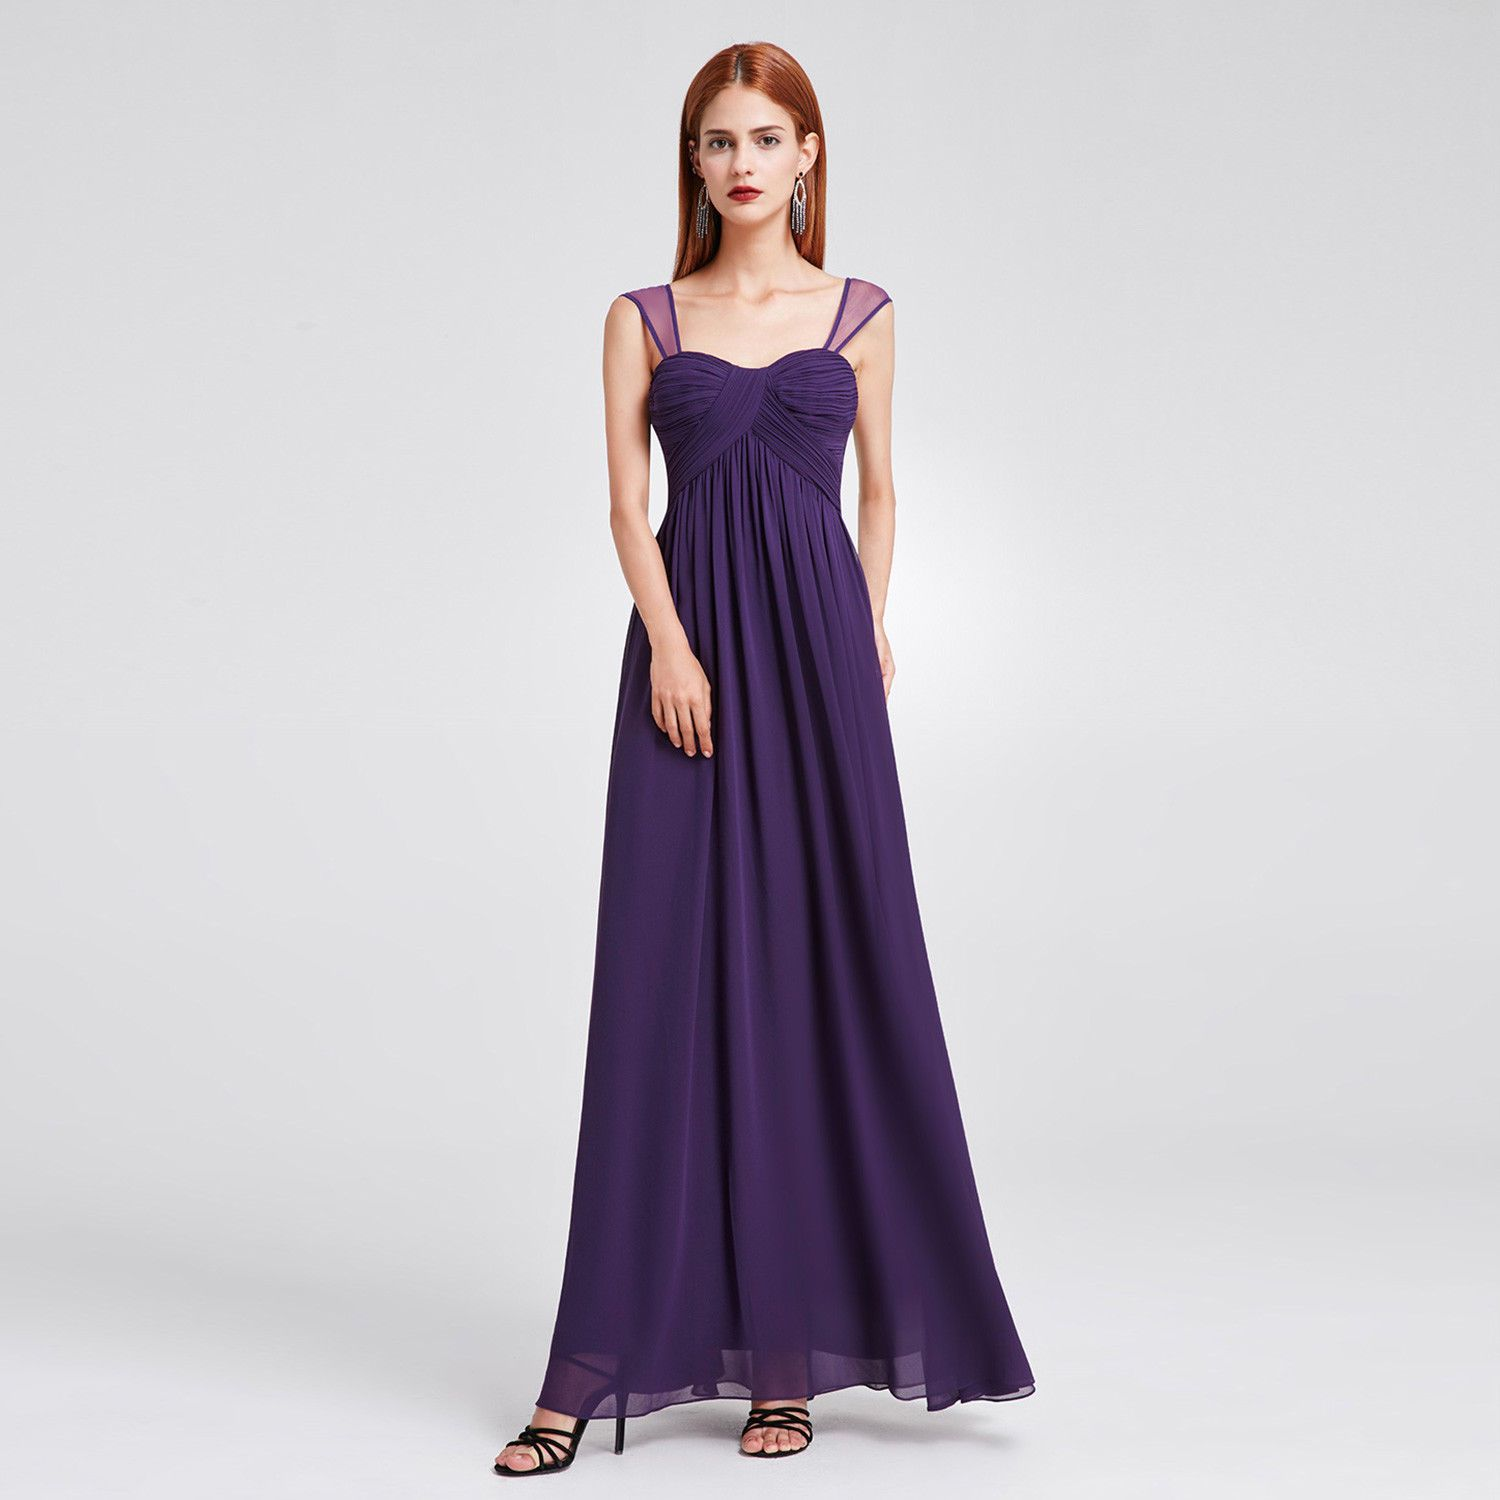 Cool awesome party evening dark purple wedding bridesmaid prom